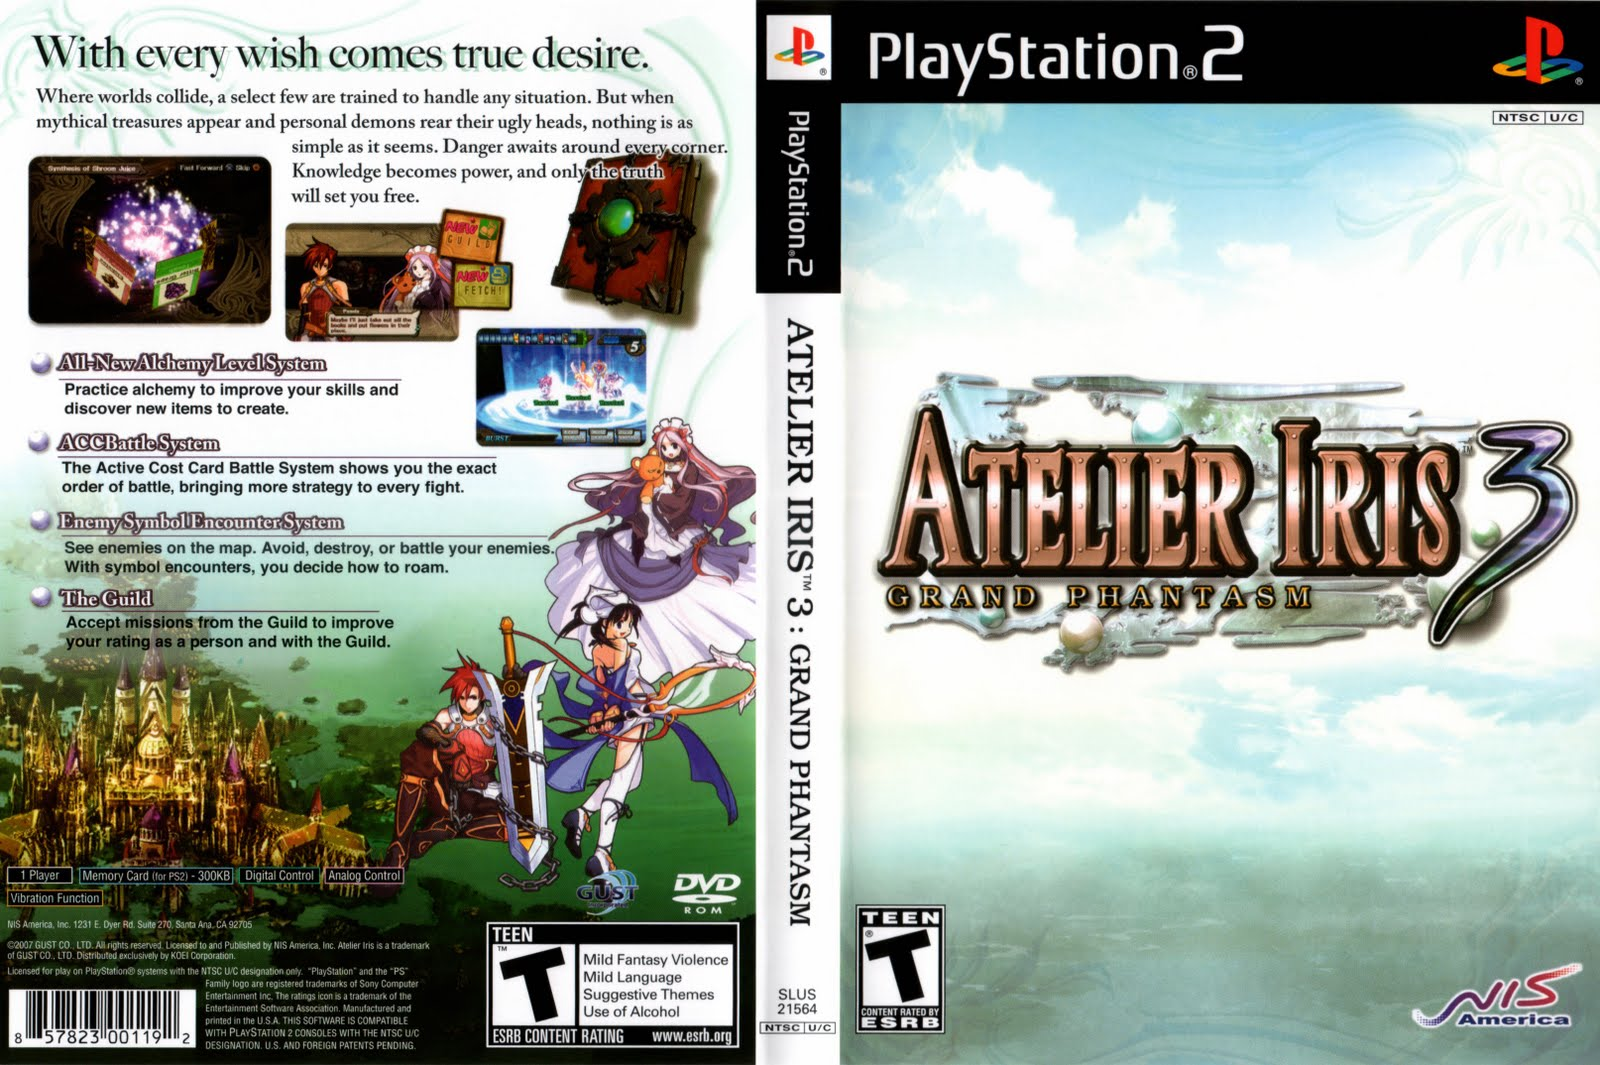 🔥 Atelier Iris 3: Grand Phantasm for PlayStation 2 - GameFAQs